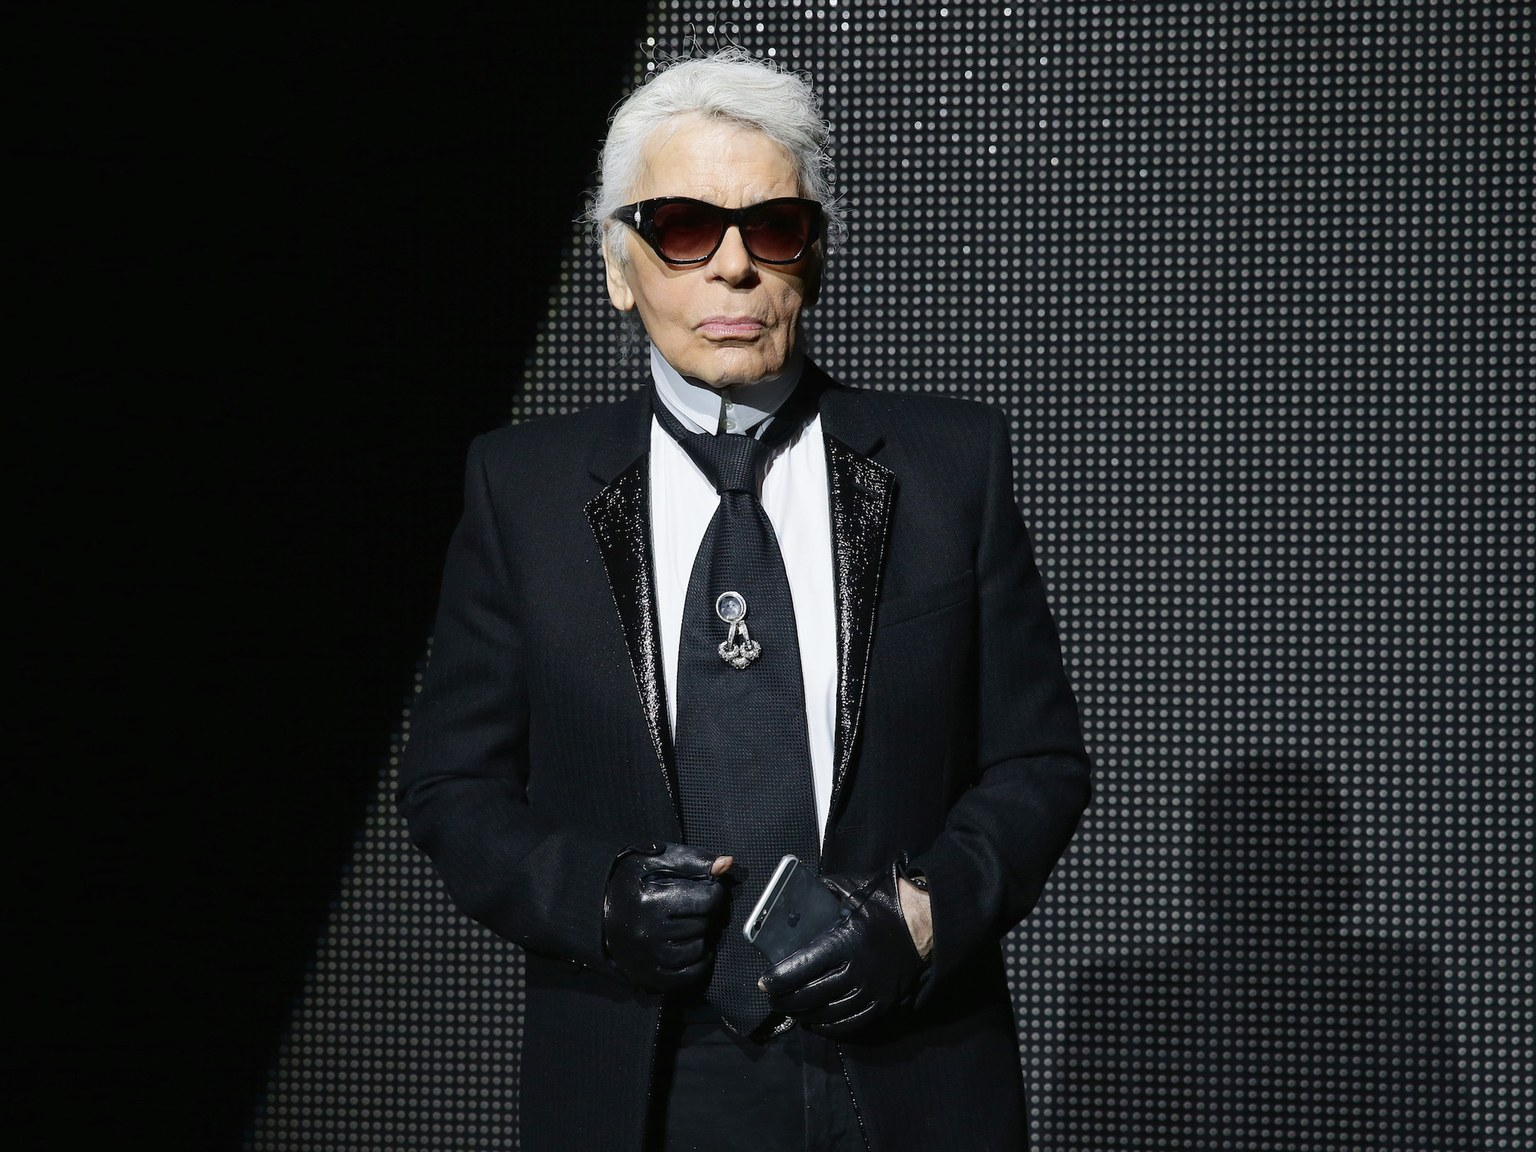 As Karl Lagerfeld Passed Away at 85, Look Back at His Most Memorable Designs and Styles